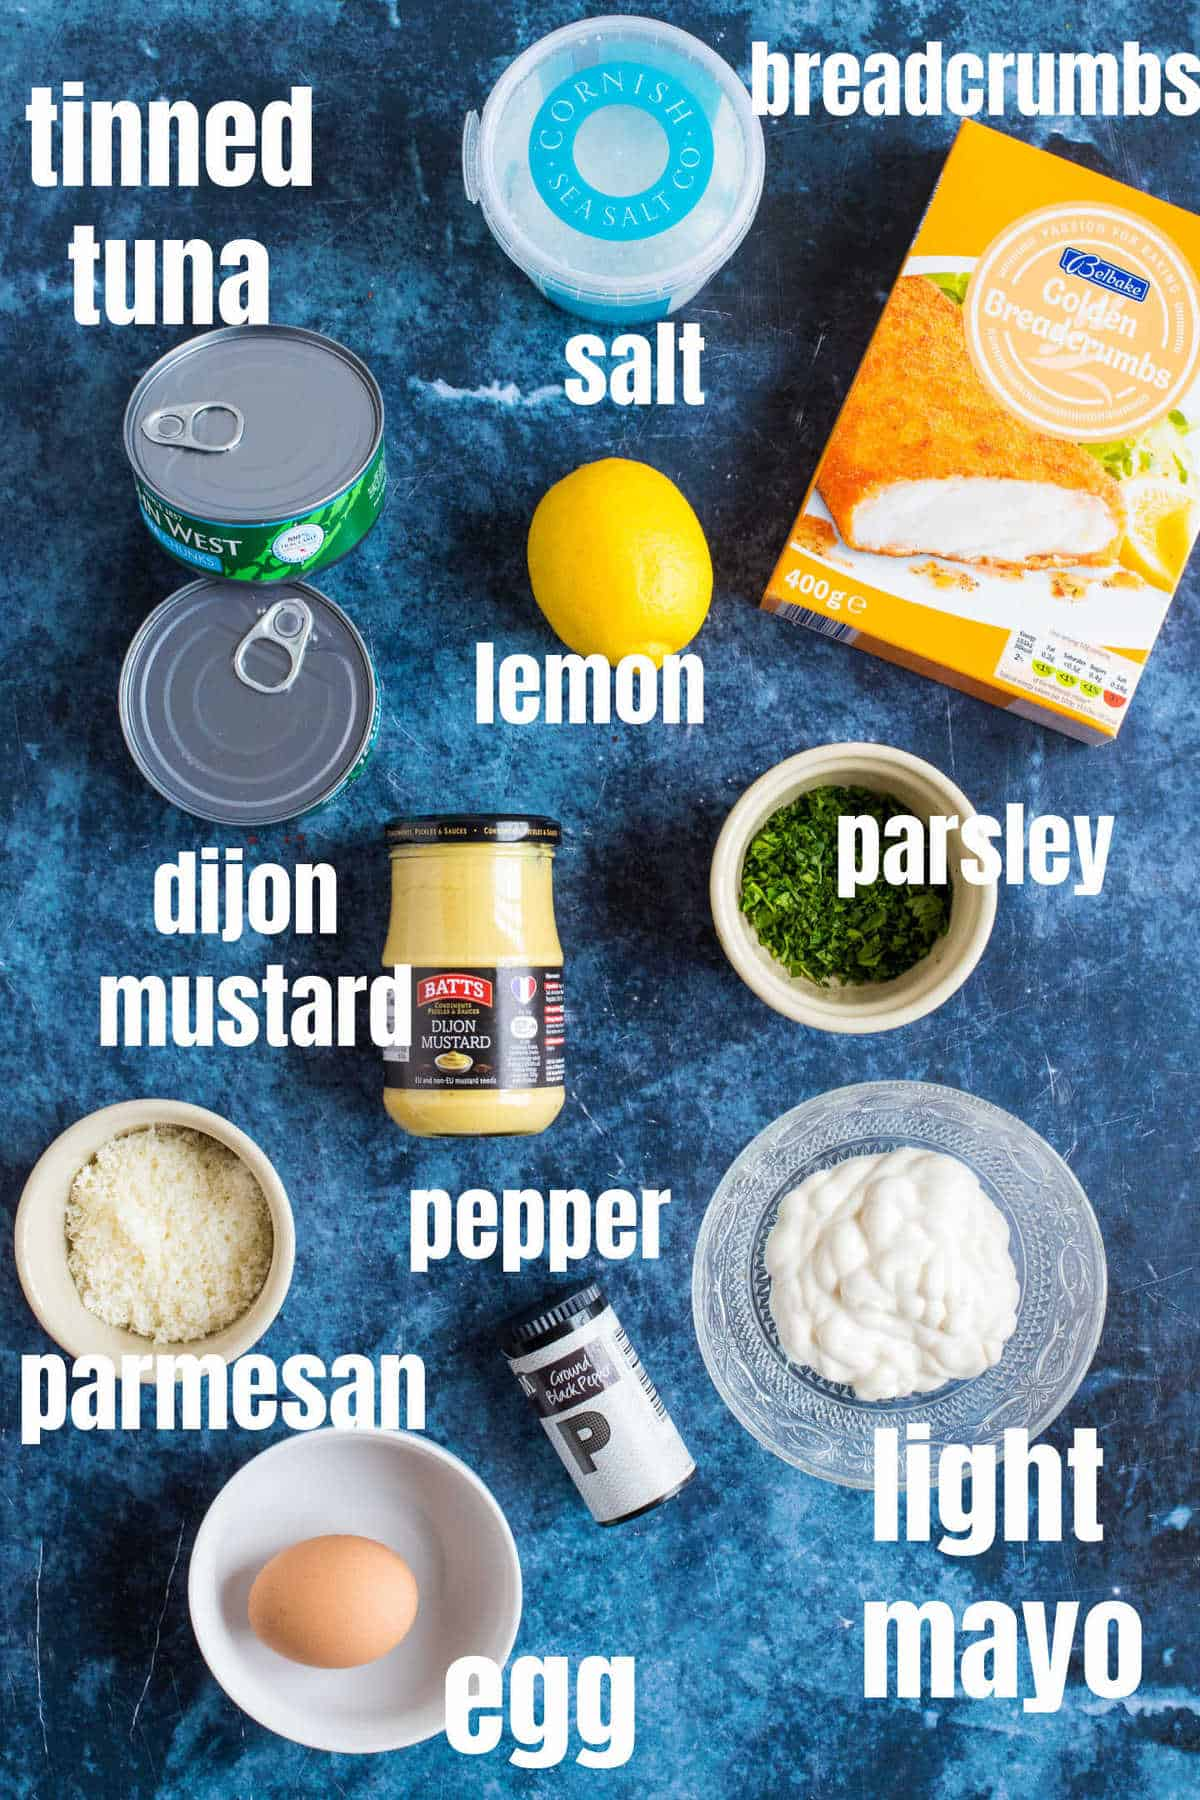 Ingredients needed to make the tinned tuna burgers.